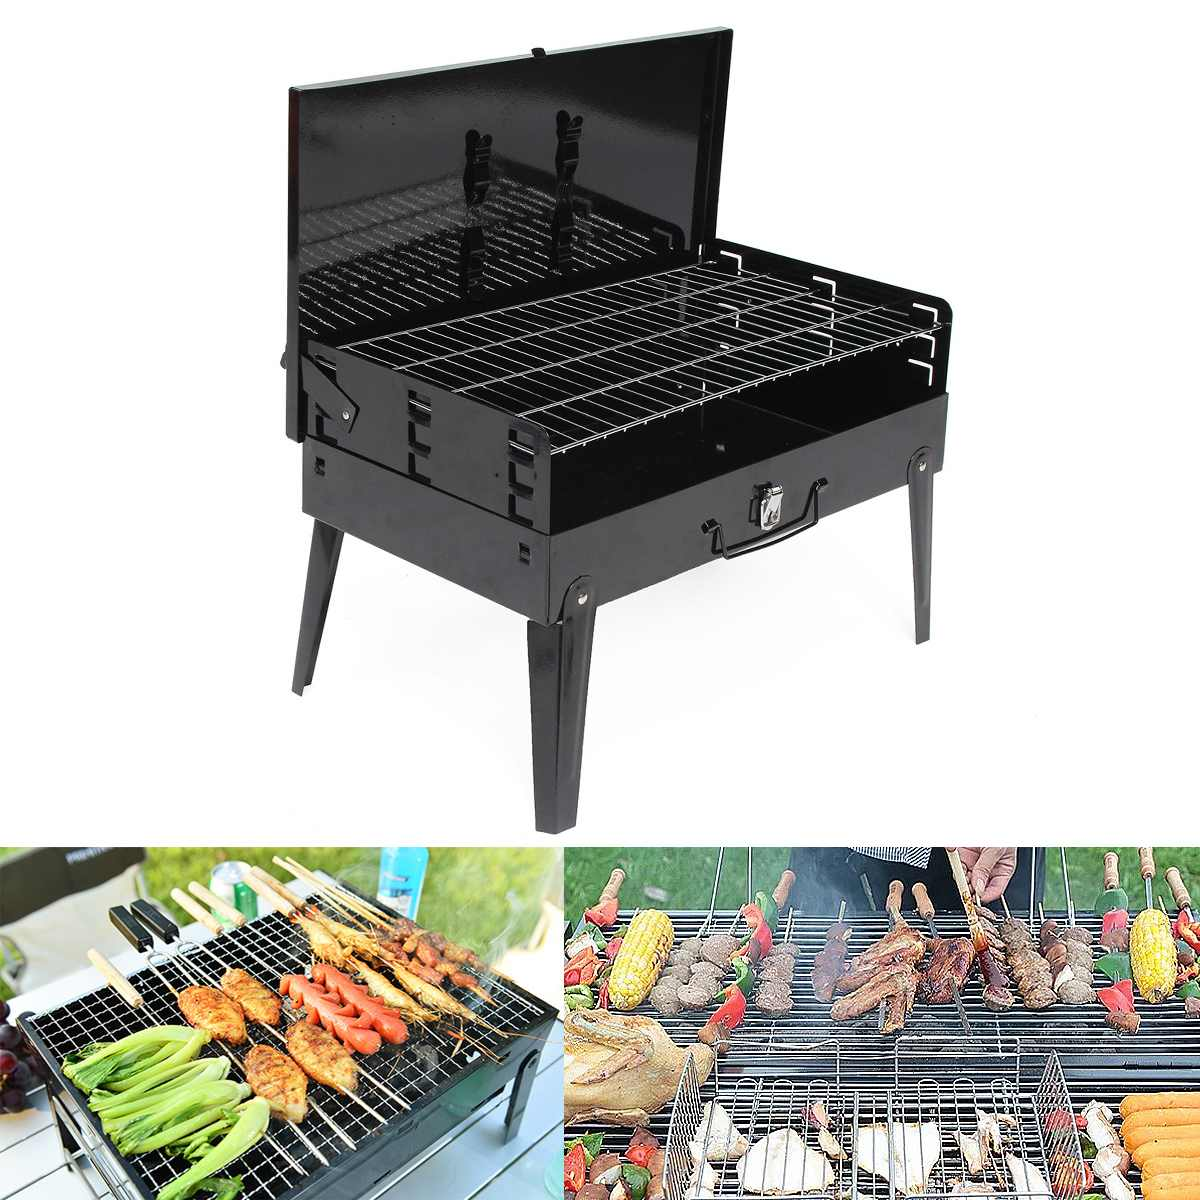 3-5 Person Portable BBQ Barbecue Grills Burner Oven Outdoor Garden Charcoal Barbeque Patio Party Cooking Foldable Picnic3-5 Person Portable BBQ Barbecue Grills Burner Oven Outdoor Garden Charcoal Barbeque Patio Party Cooking Foldable Picnic